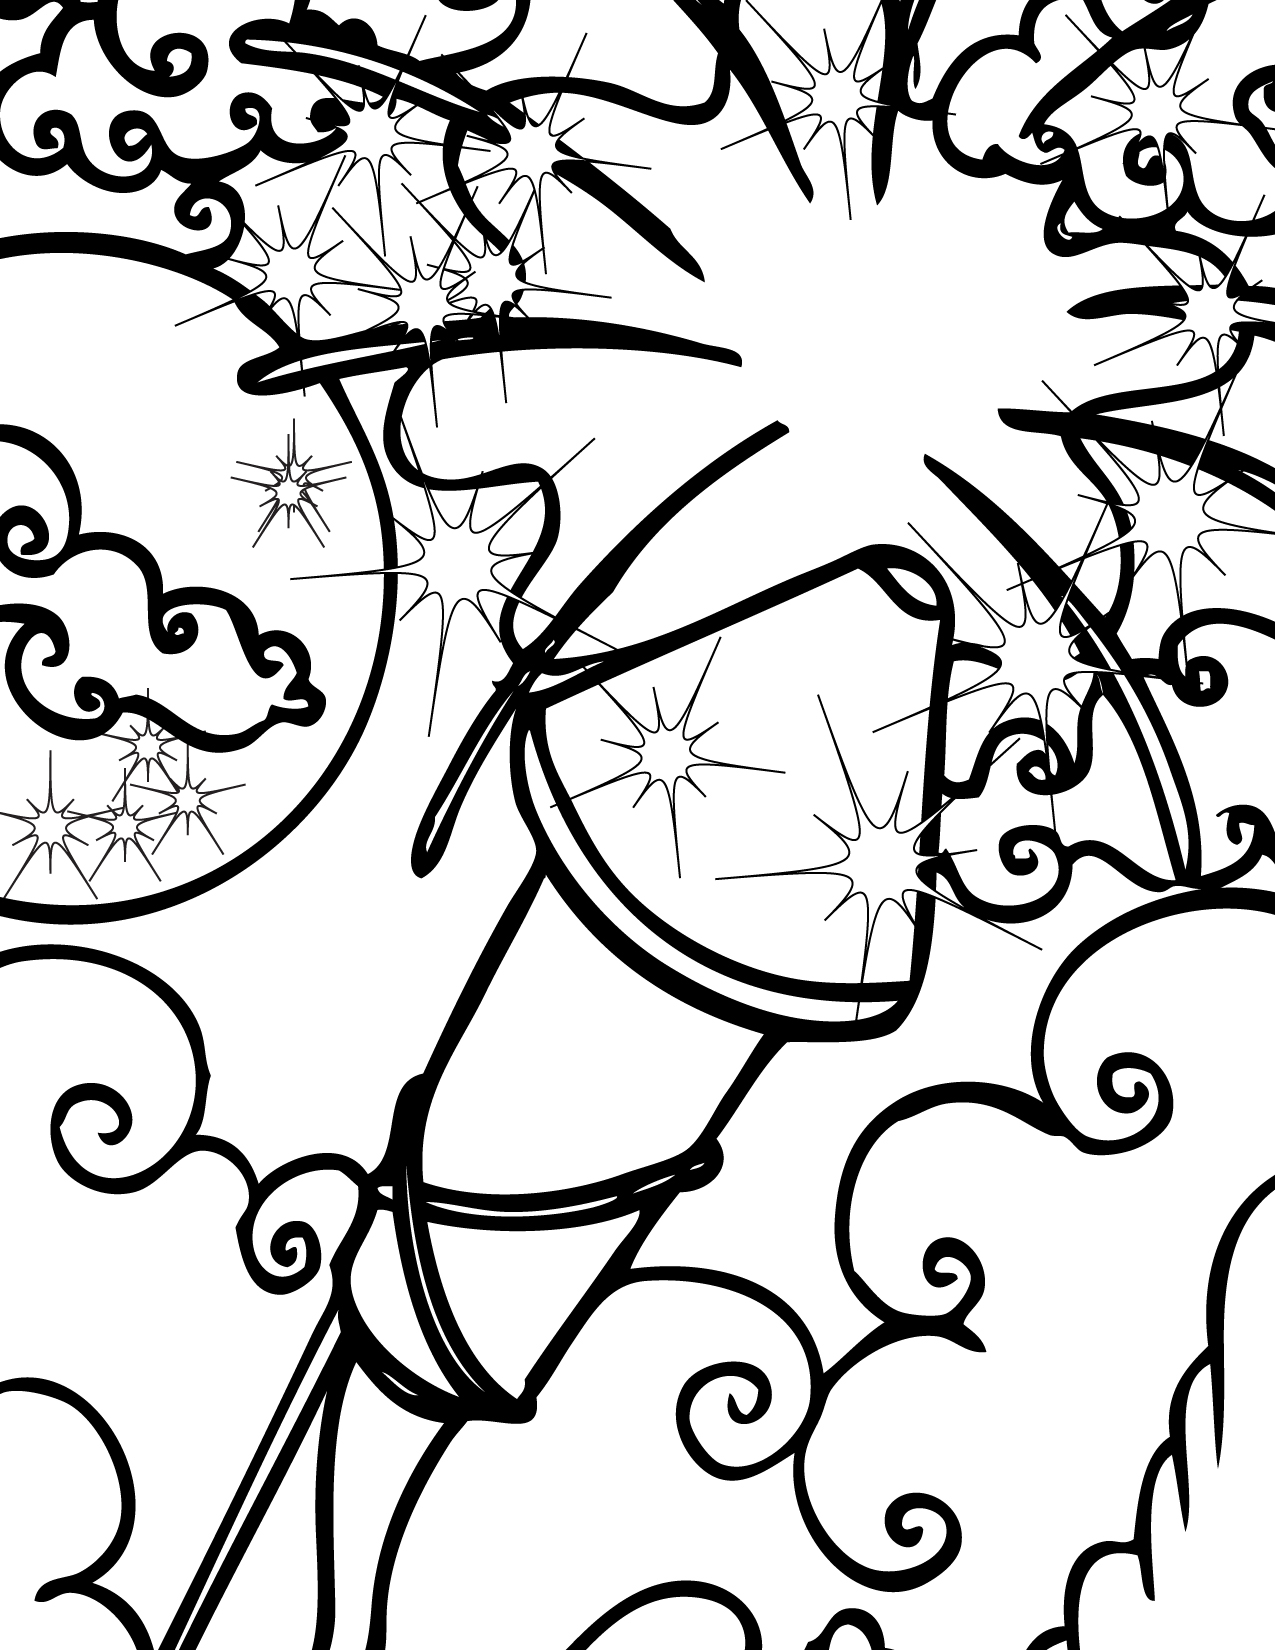 coloring page of fireworks free printable fireworks coloring pages for kids fireworks page coloring of